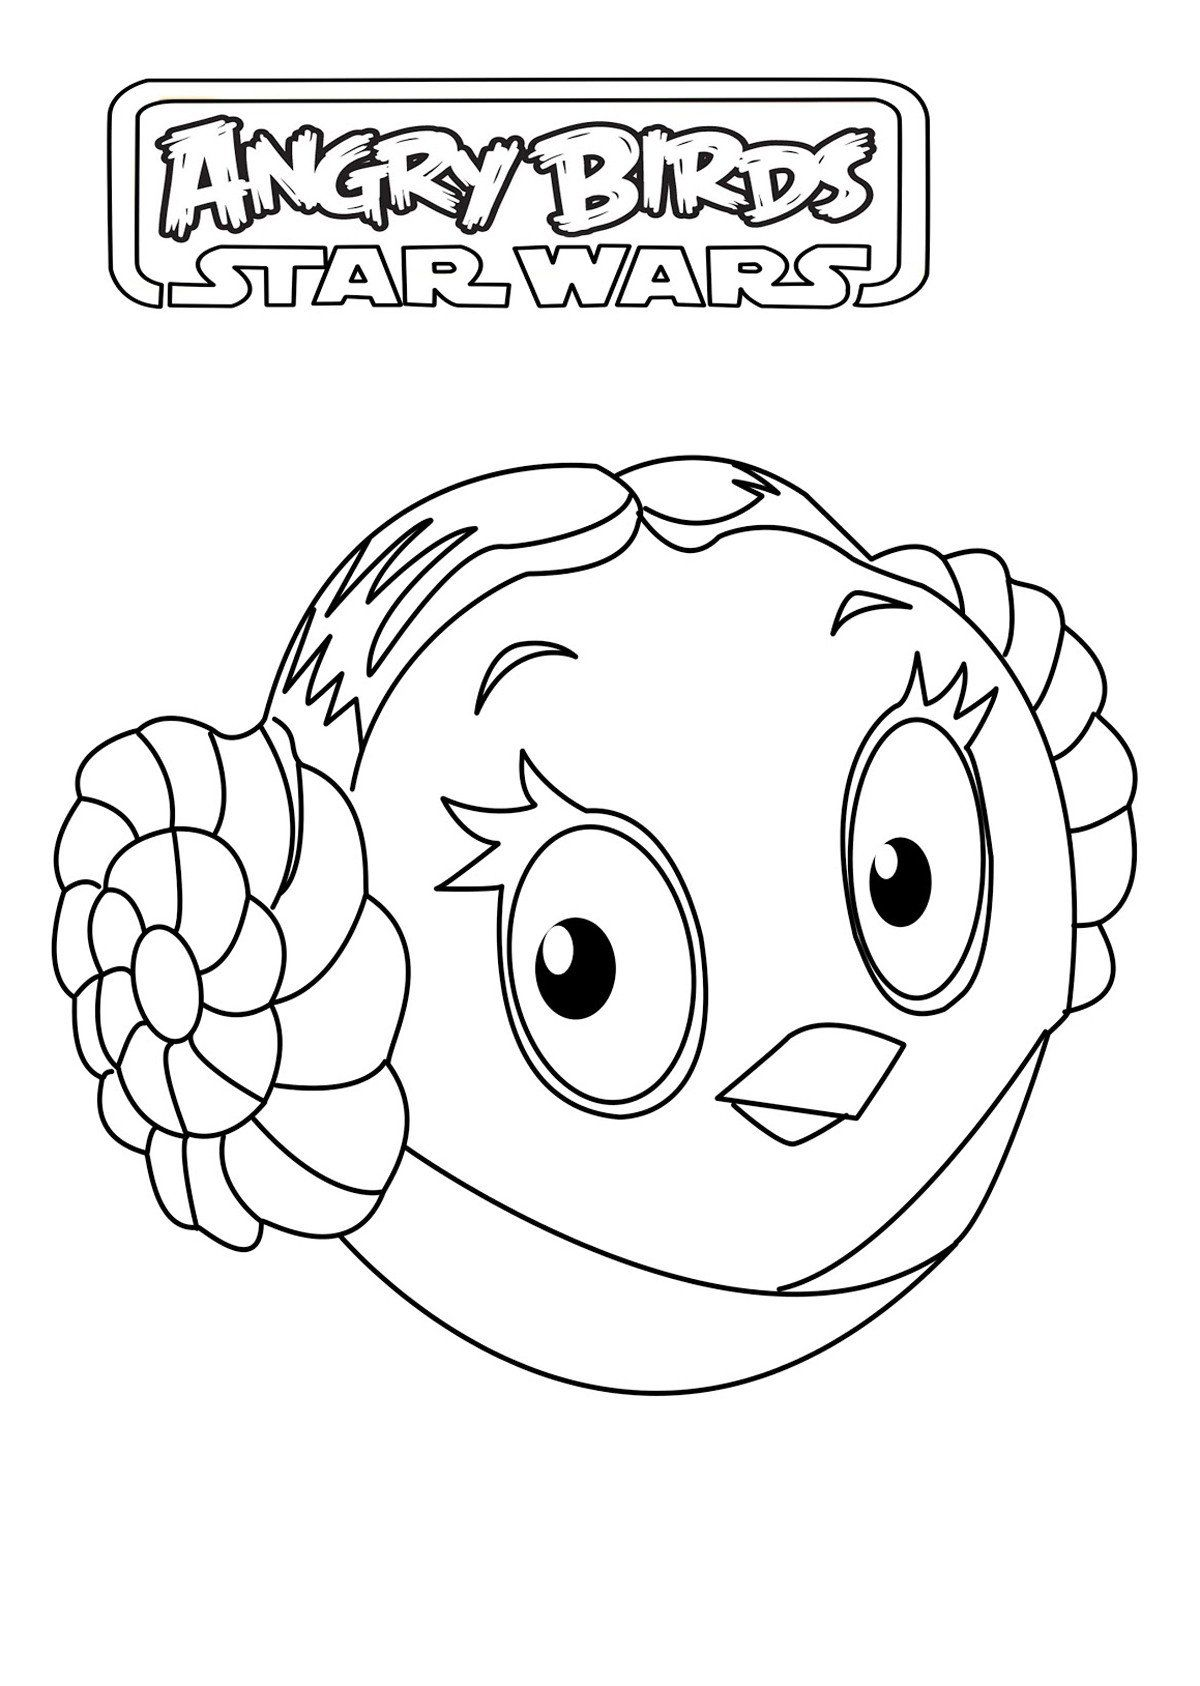 Angry Bird Coloring Pages Printable Angry Birds Star Wars